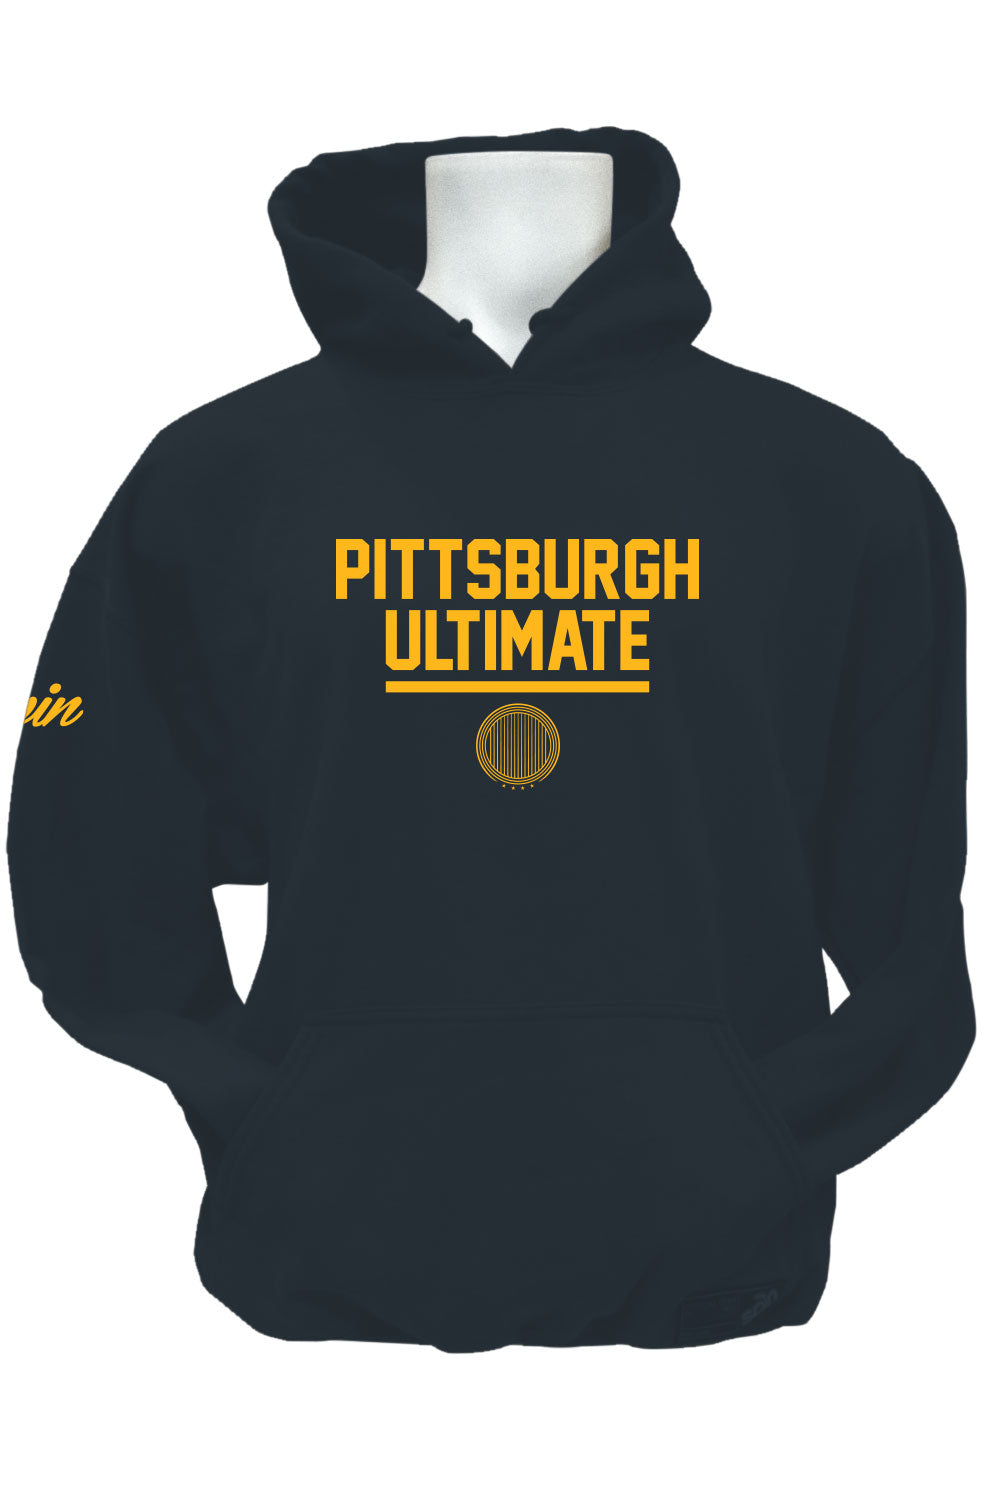 Pittsburgh Ultimate Fleece Hoodie (Charcoal)